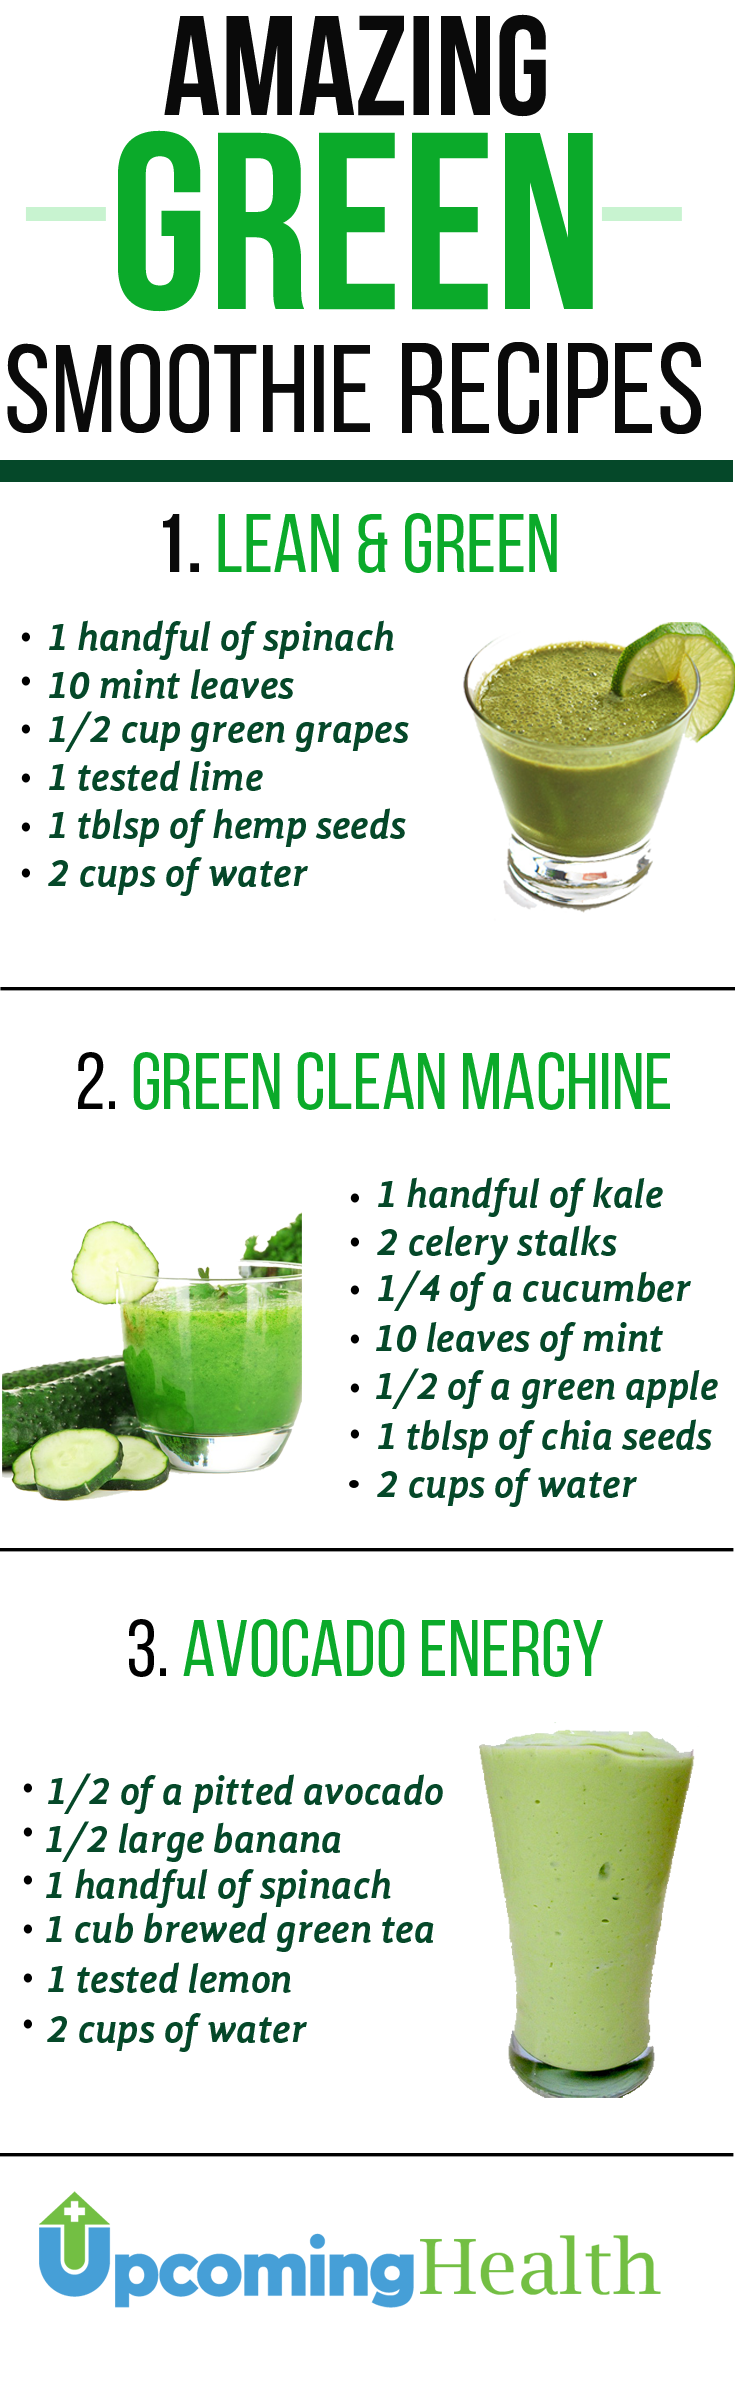 green smoothies will revolutionize your health | smoothies